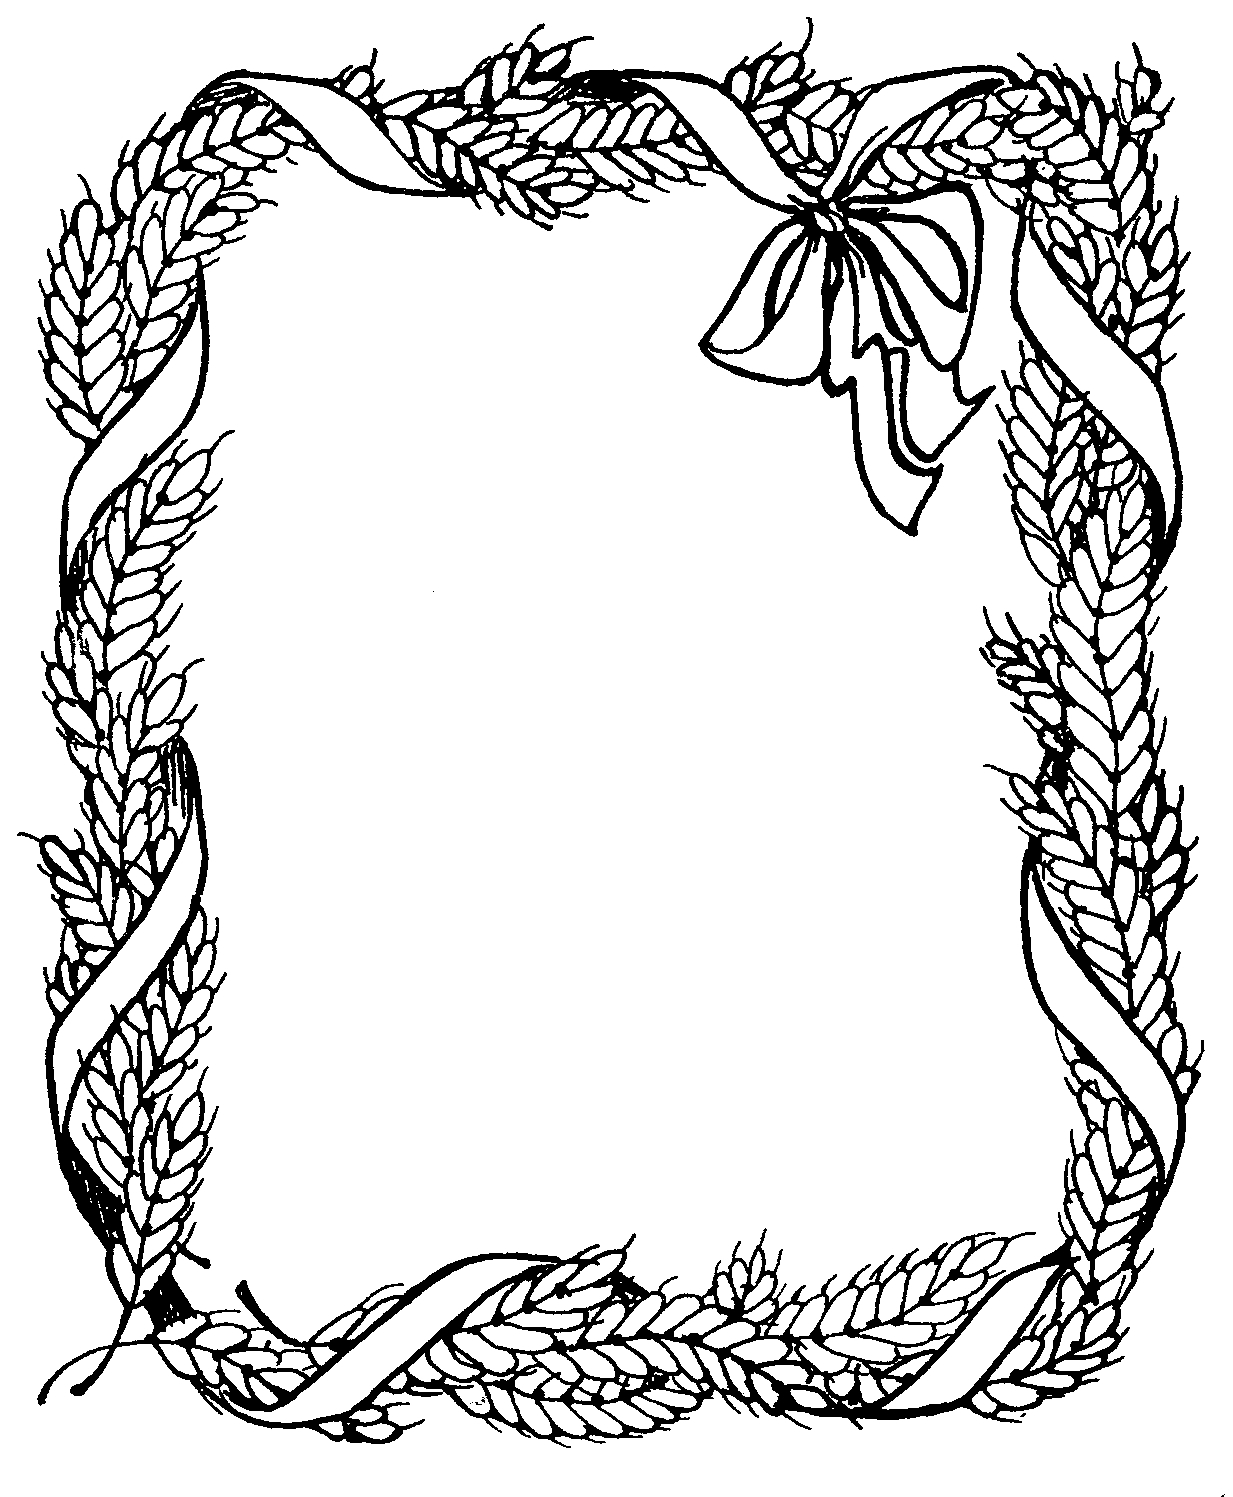 Thanksgiving Black And White Thanksgiving Border Clipart